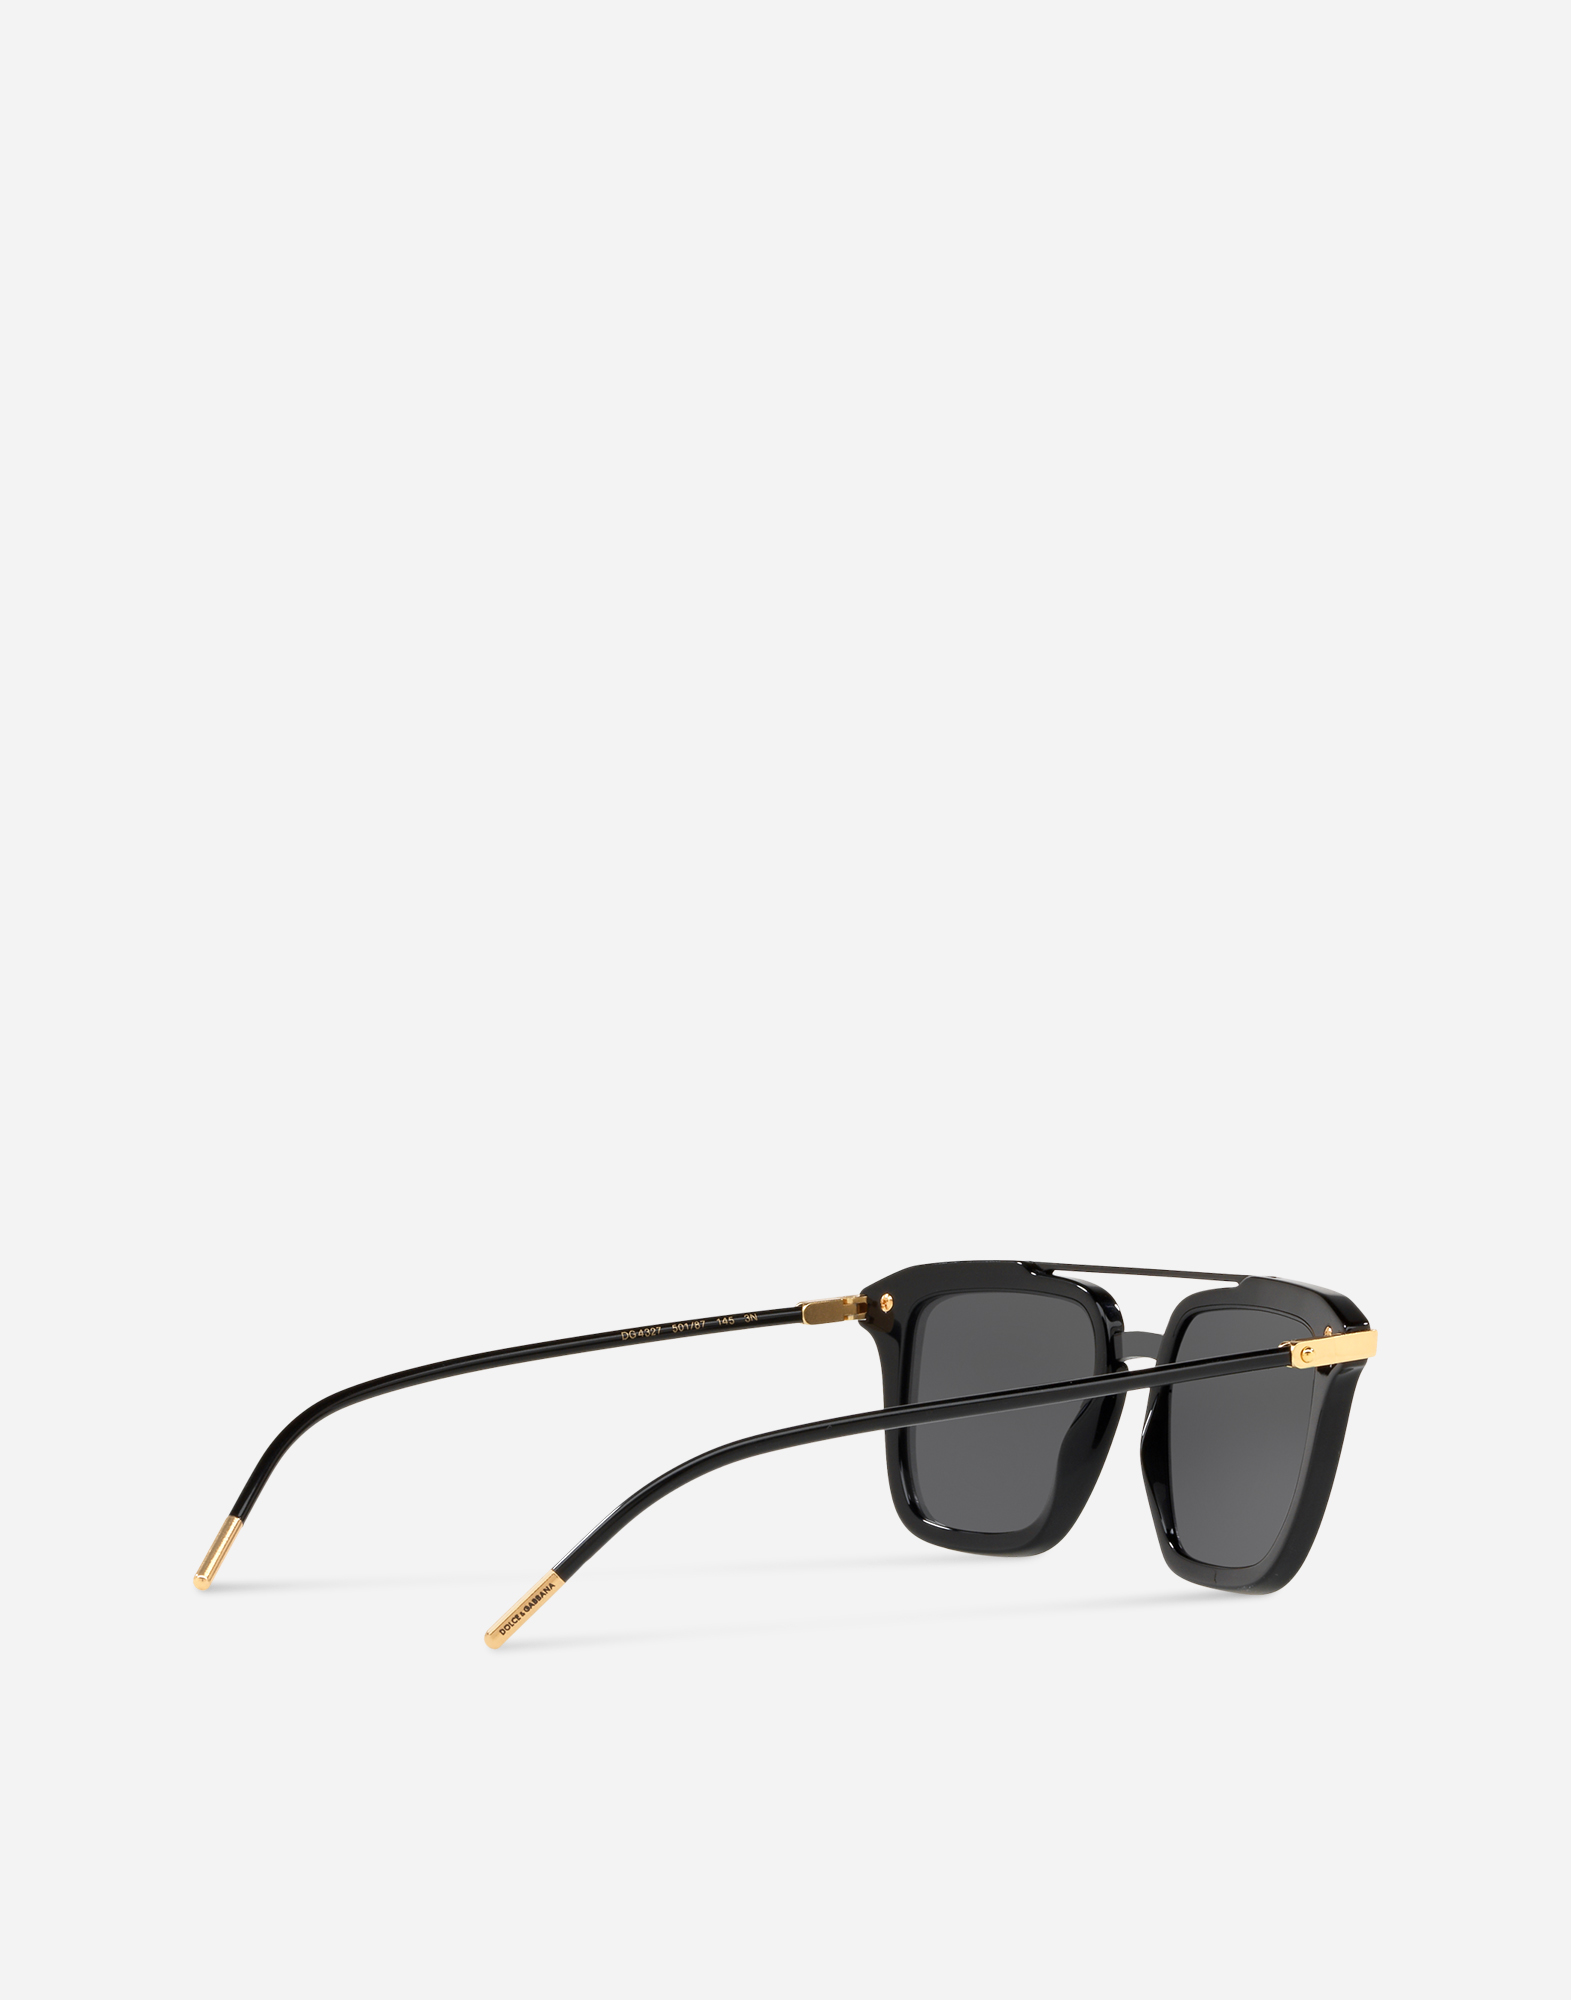 SQUARE SUNGLASSES WITH DOUBLE BRIDGE